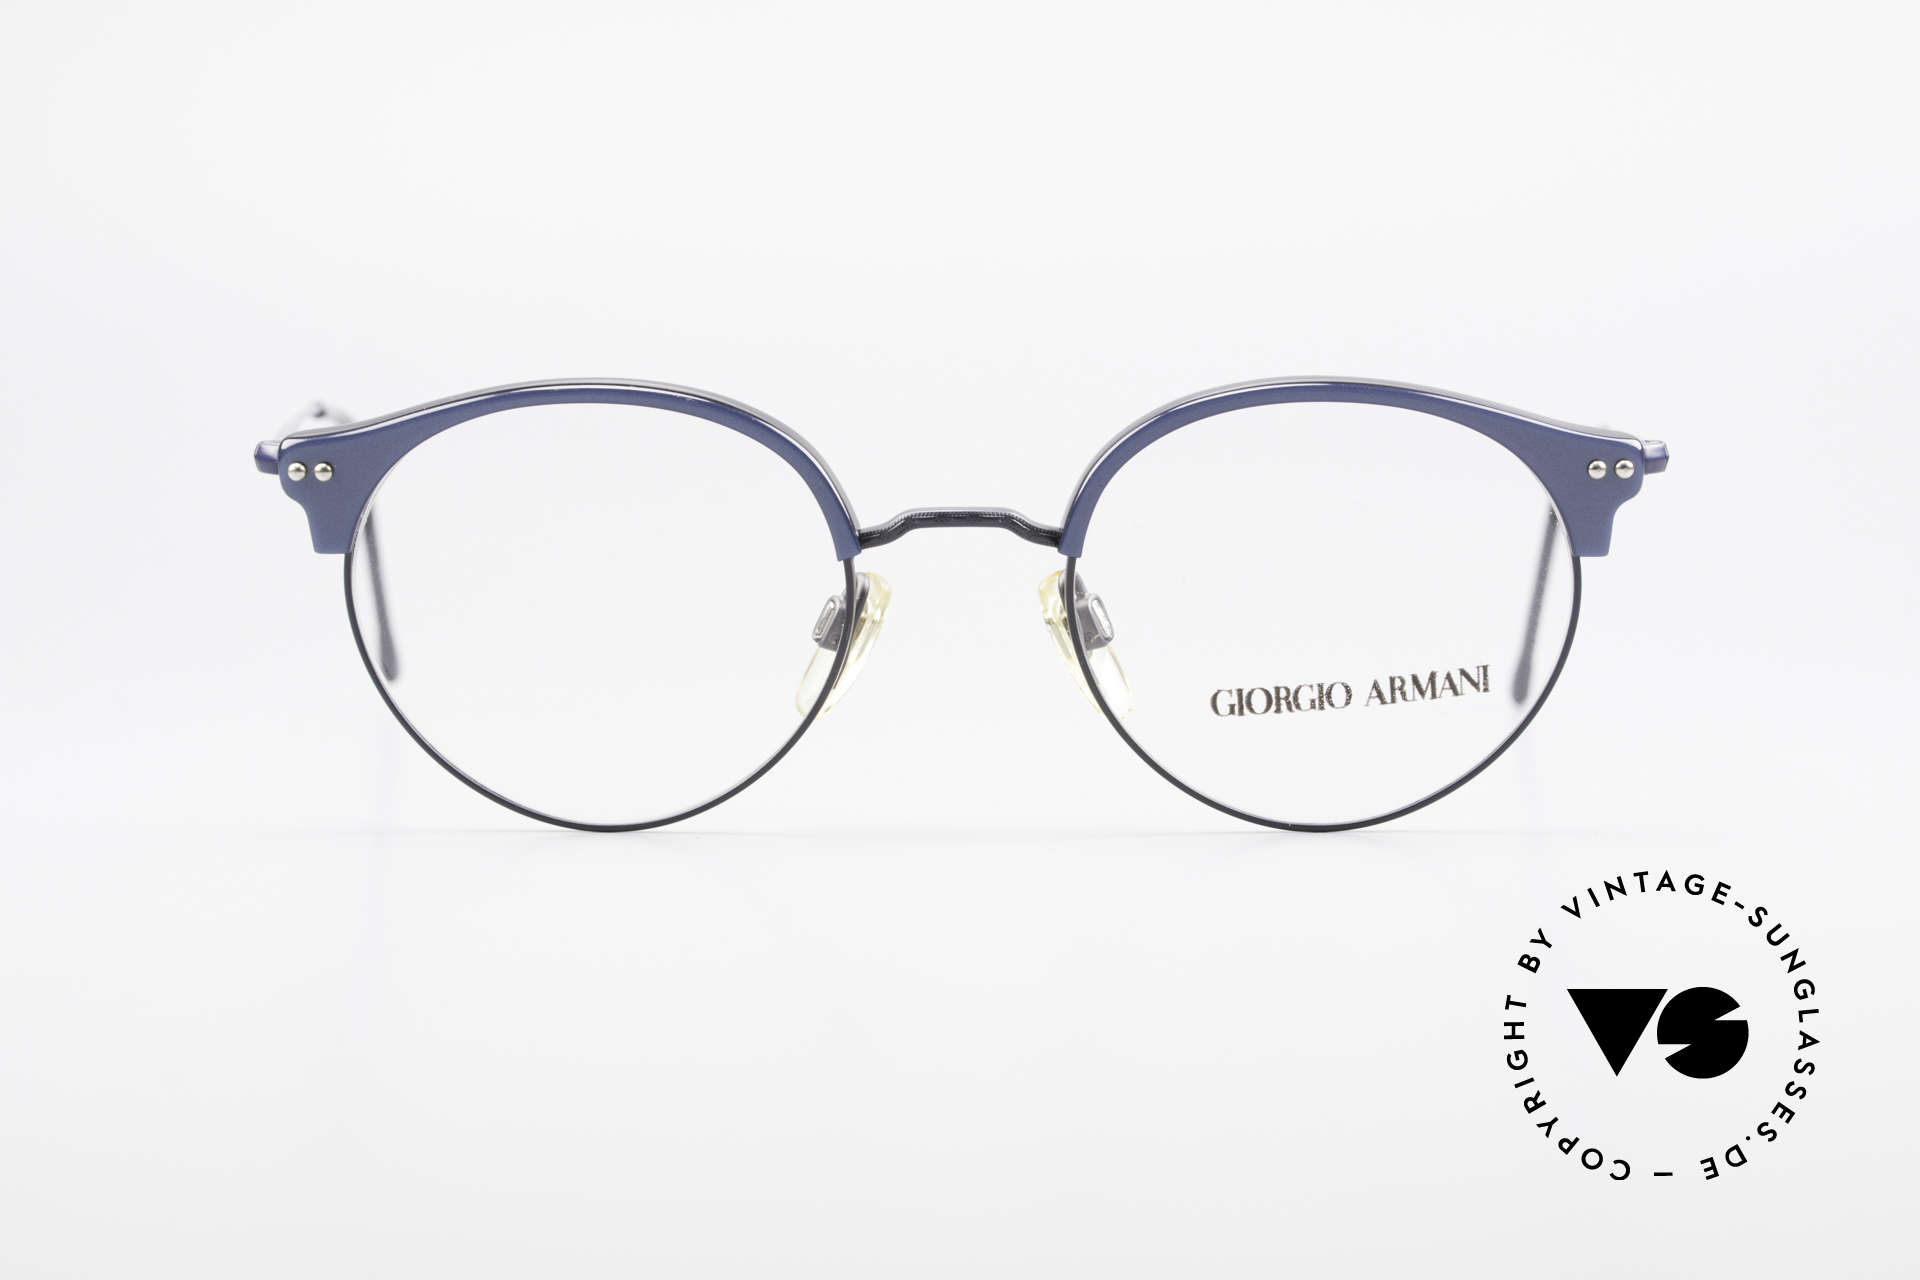 Giorgio Armani 377 90's Panto Style Eyeglasses, a real classic: famous 'panto'-design (simply elegant), Made for Men and Women